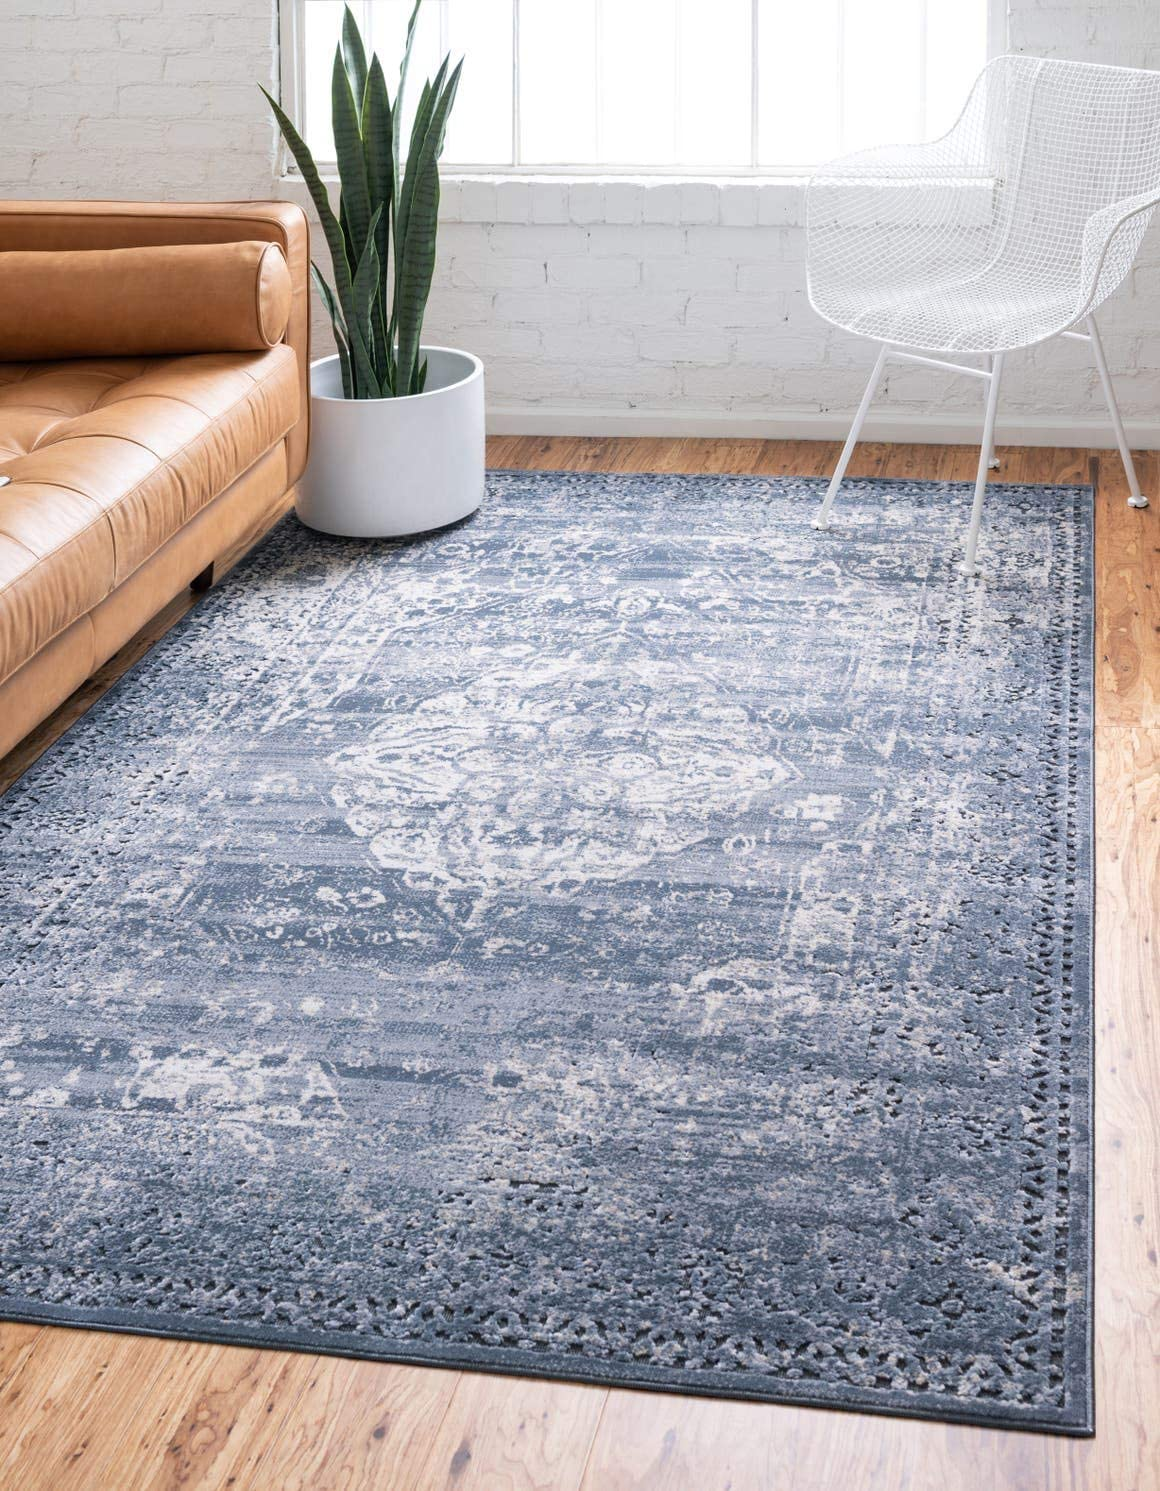 Unique Loom Chateau Collection Distressed Vintage Traditional Textured Navy Blue Beige Area Rug 2 2 x 3 0